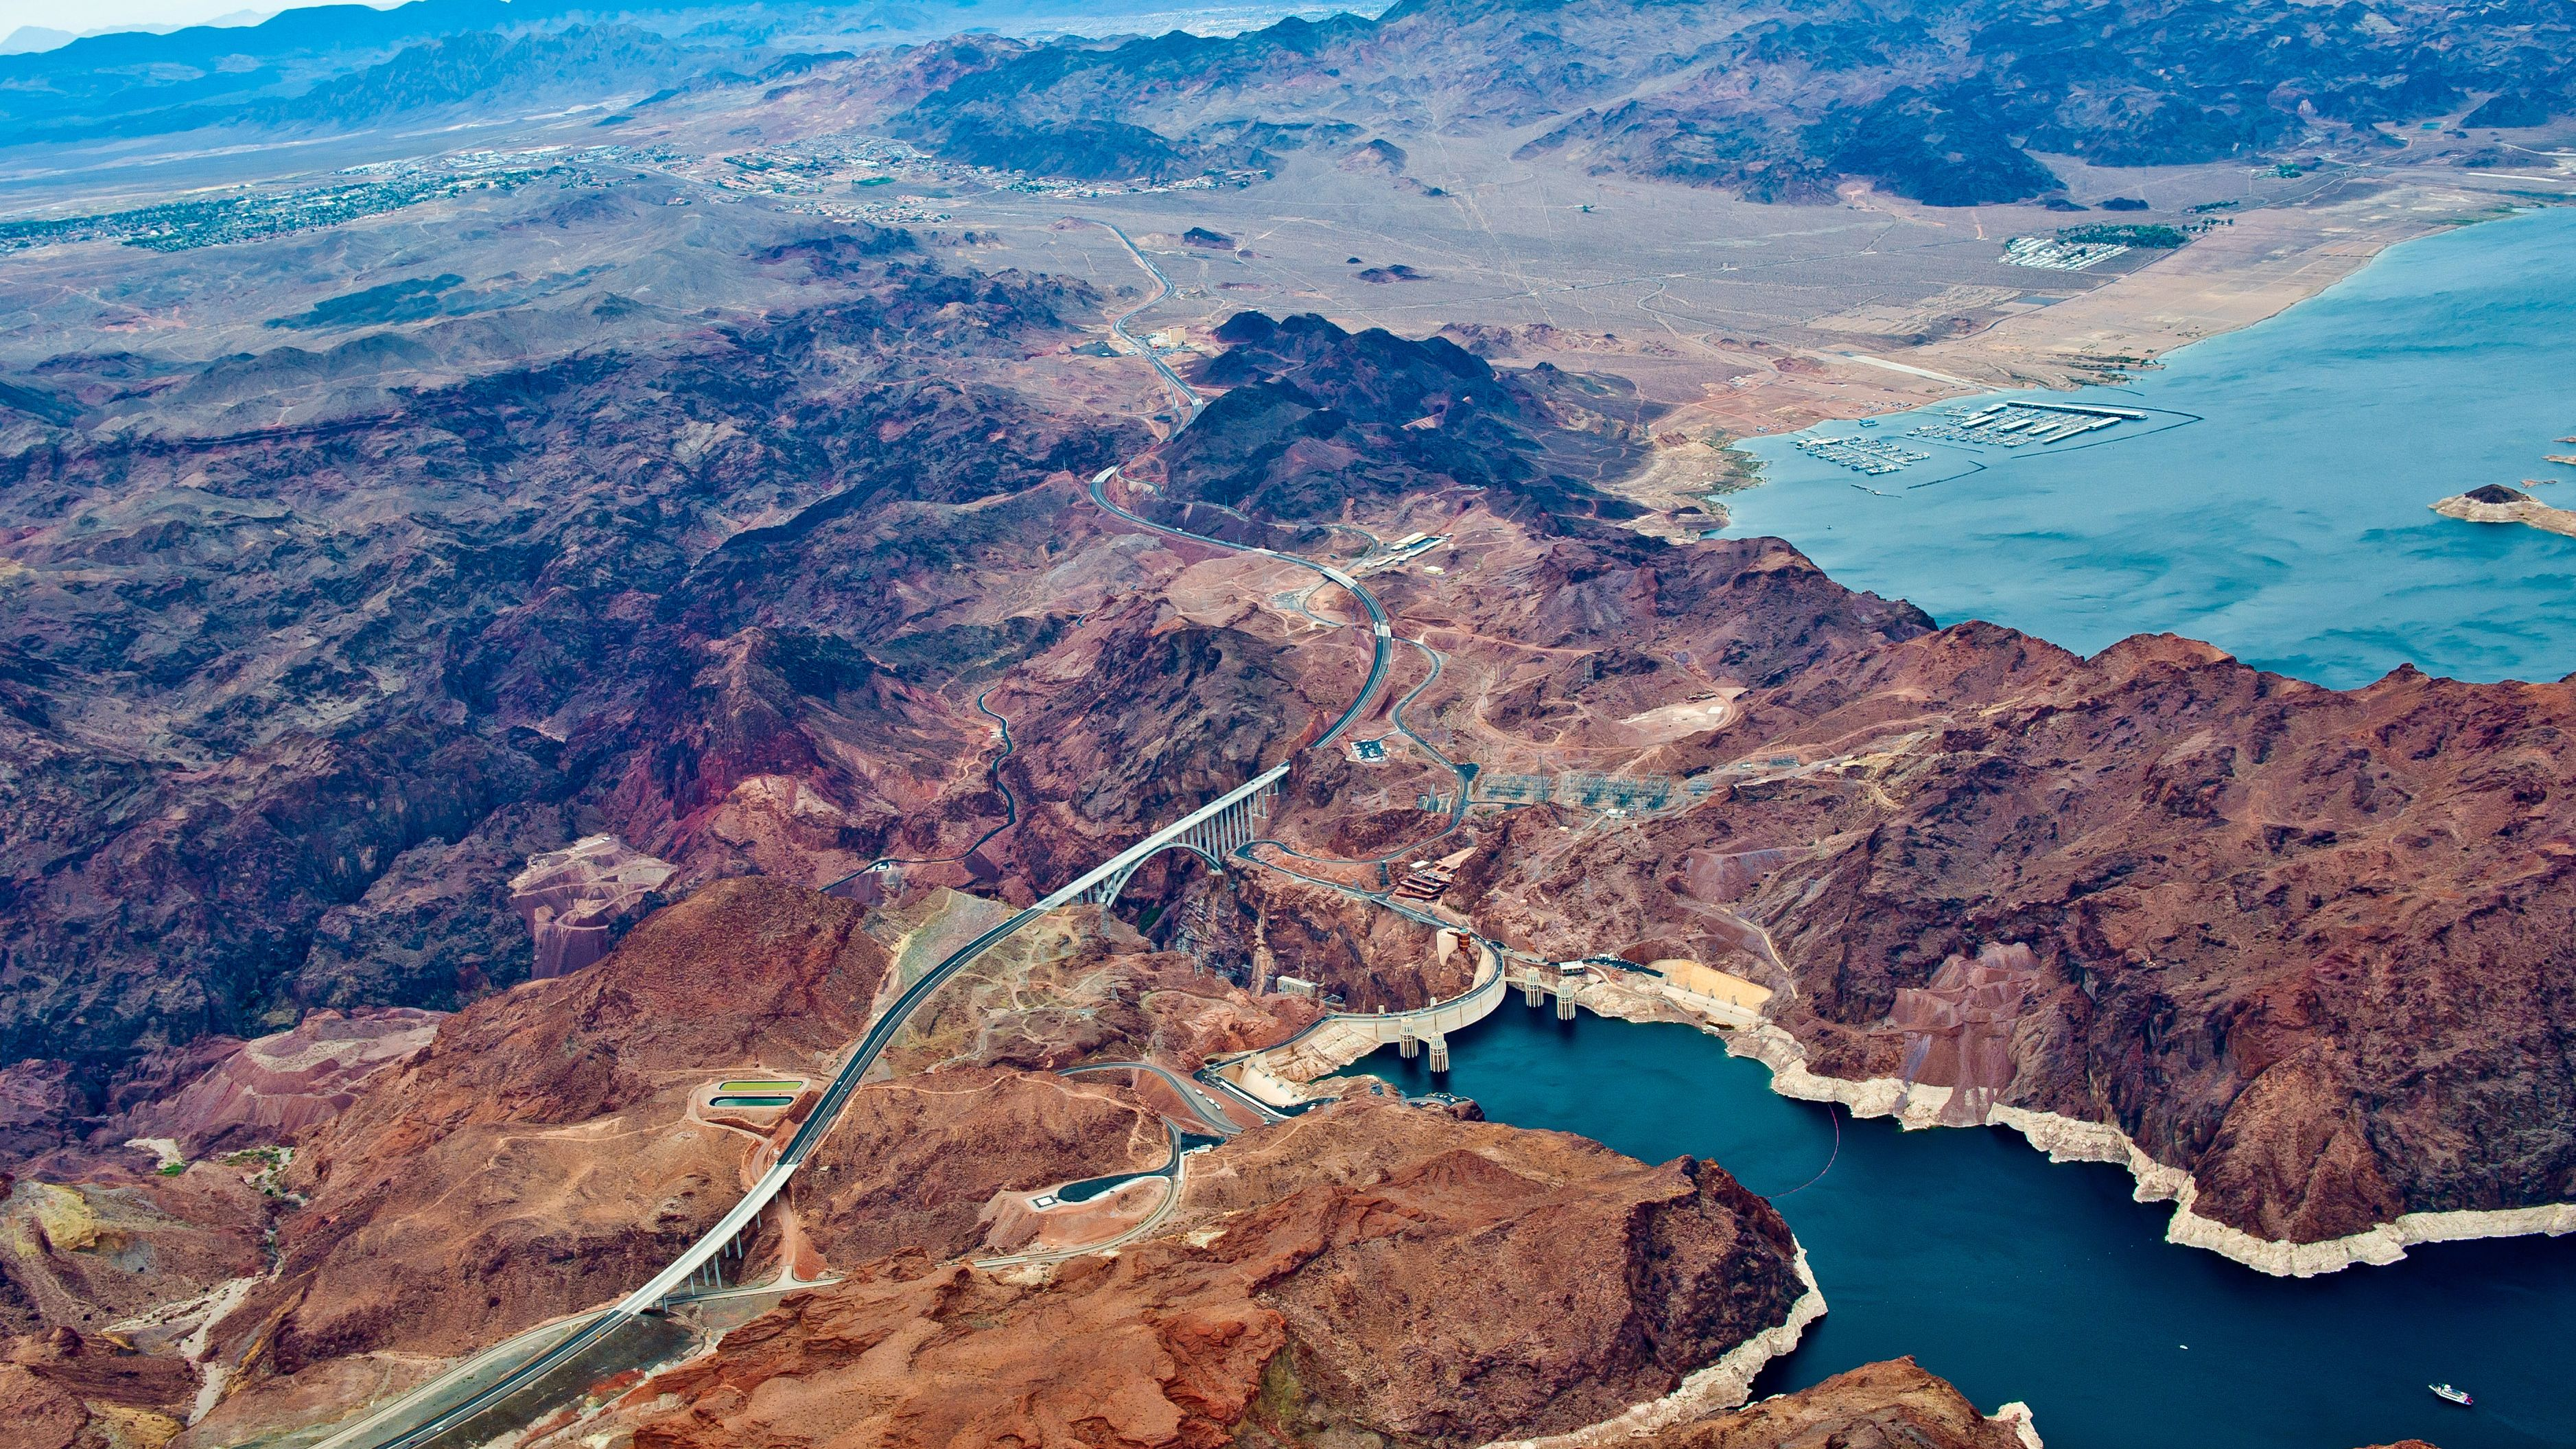 Aerial view of The colorado river and the Grand Canyon